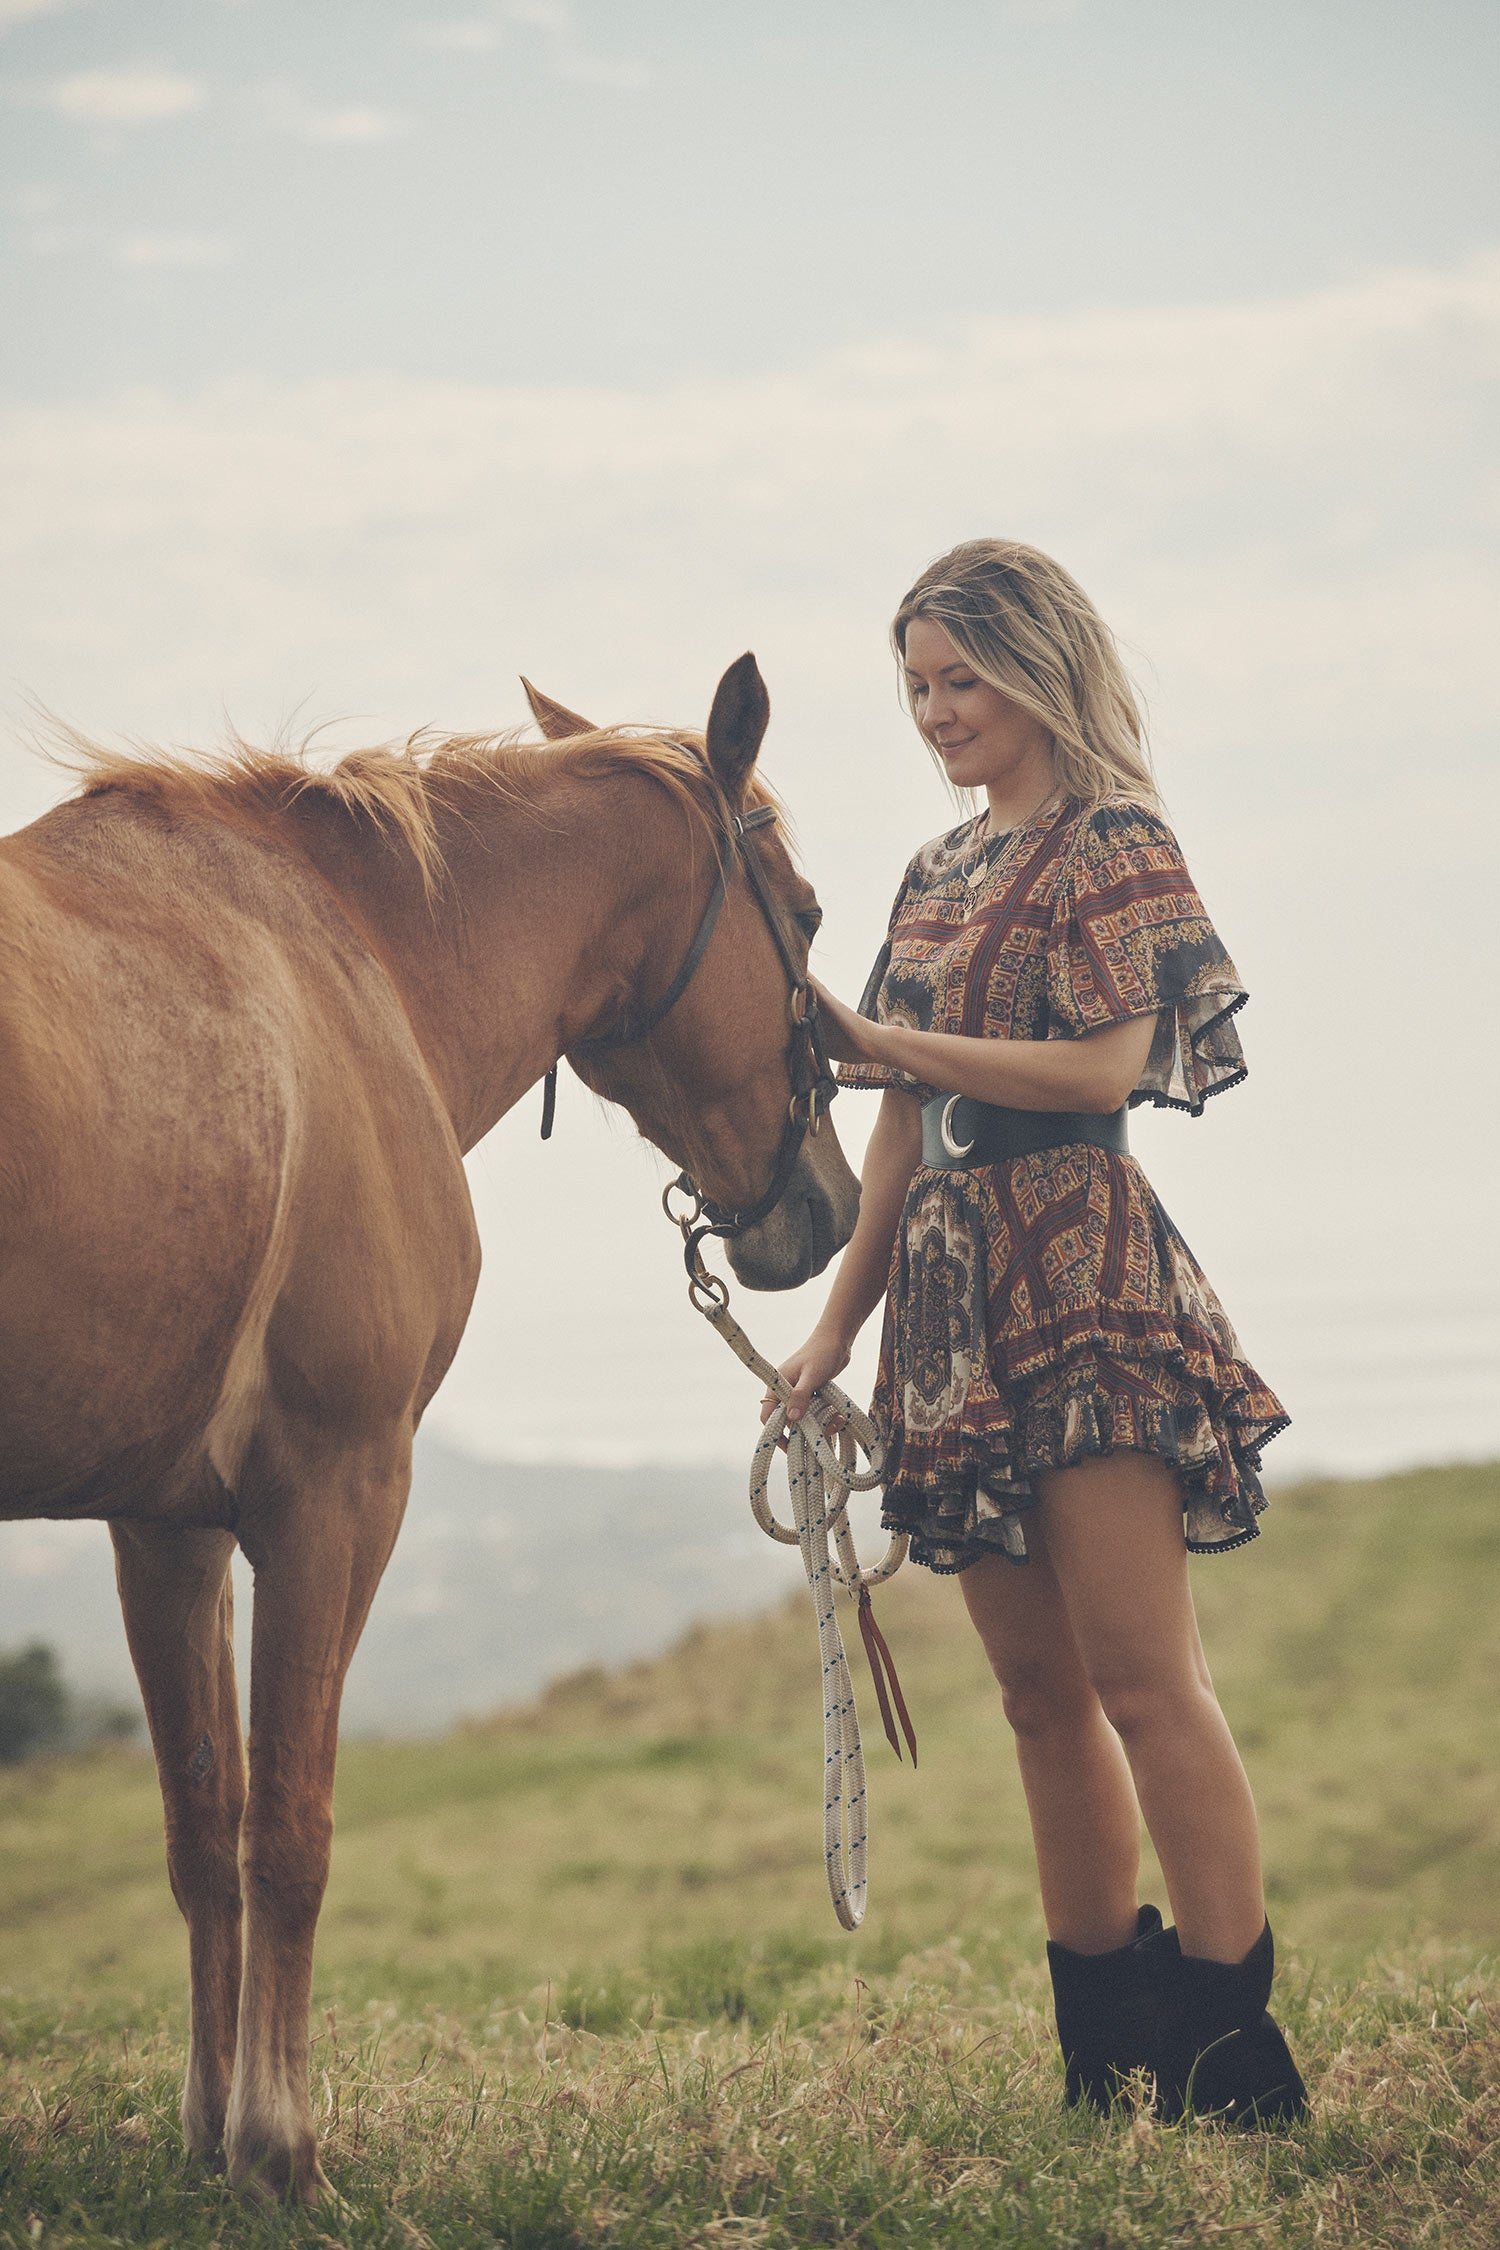 Jeweller and campaign model, Lucie Ferguson, posing in a green pasture with horses while wearing gold jewellery, black boots and the Spell regal Rumour Print Mini Dress with flutter sleeves and a gathered frill hem.